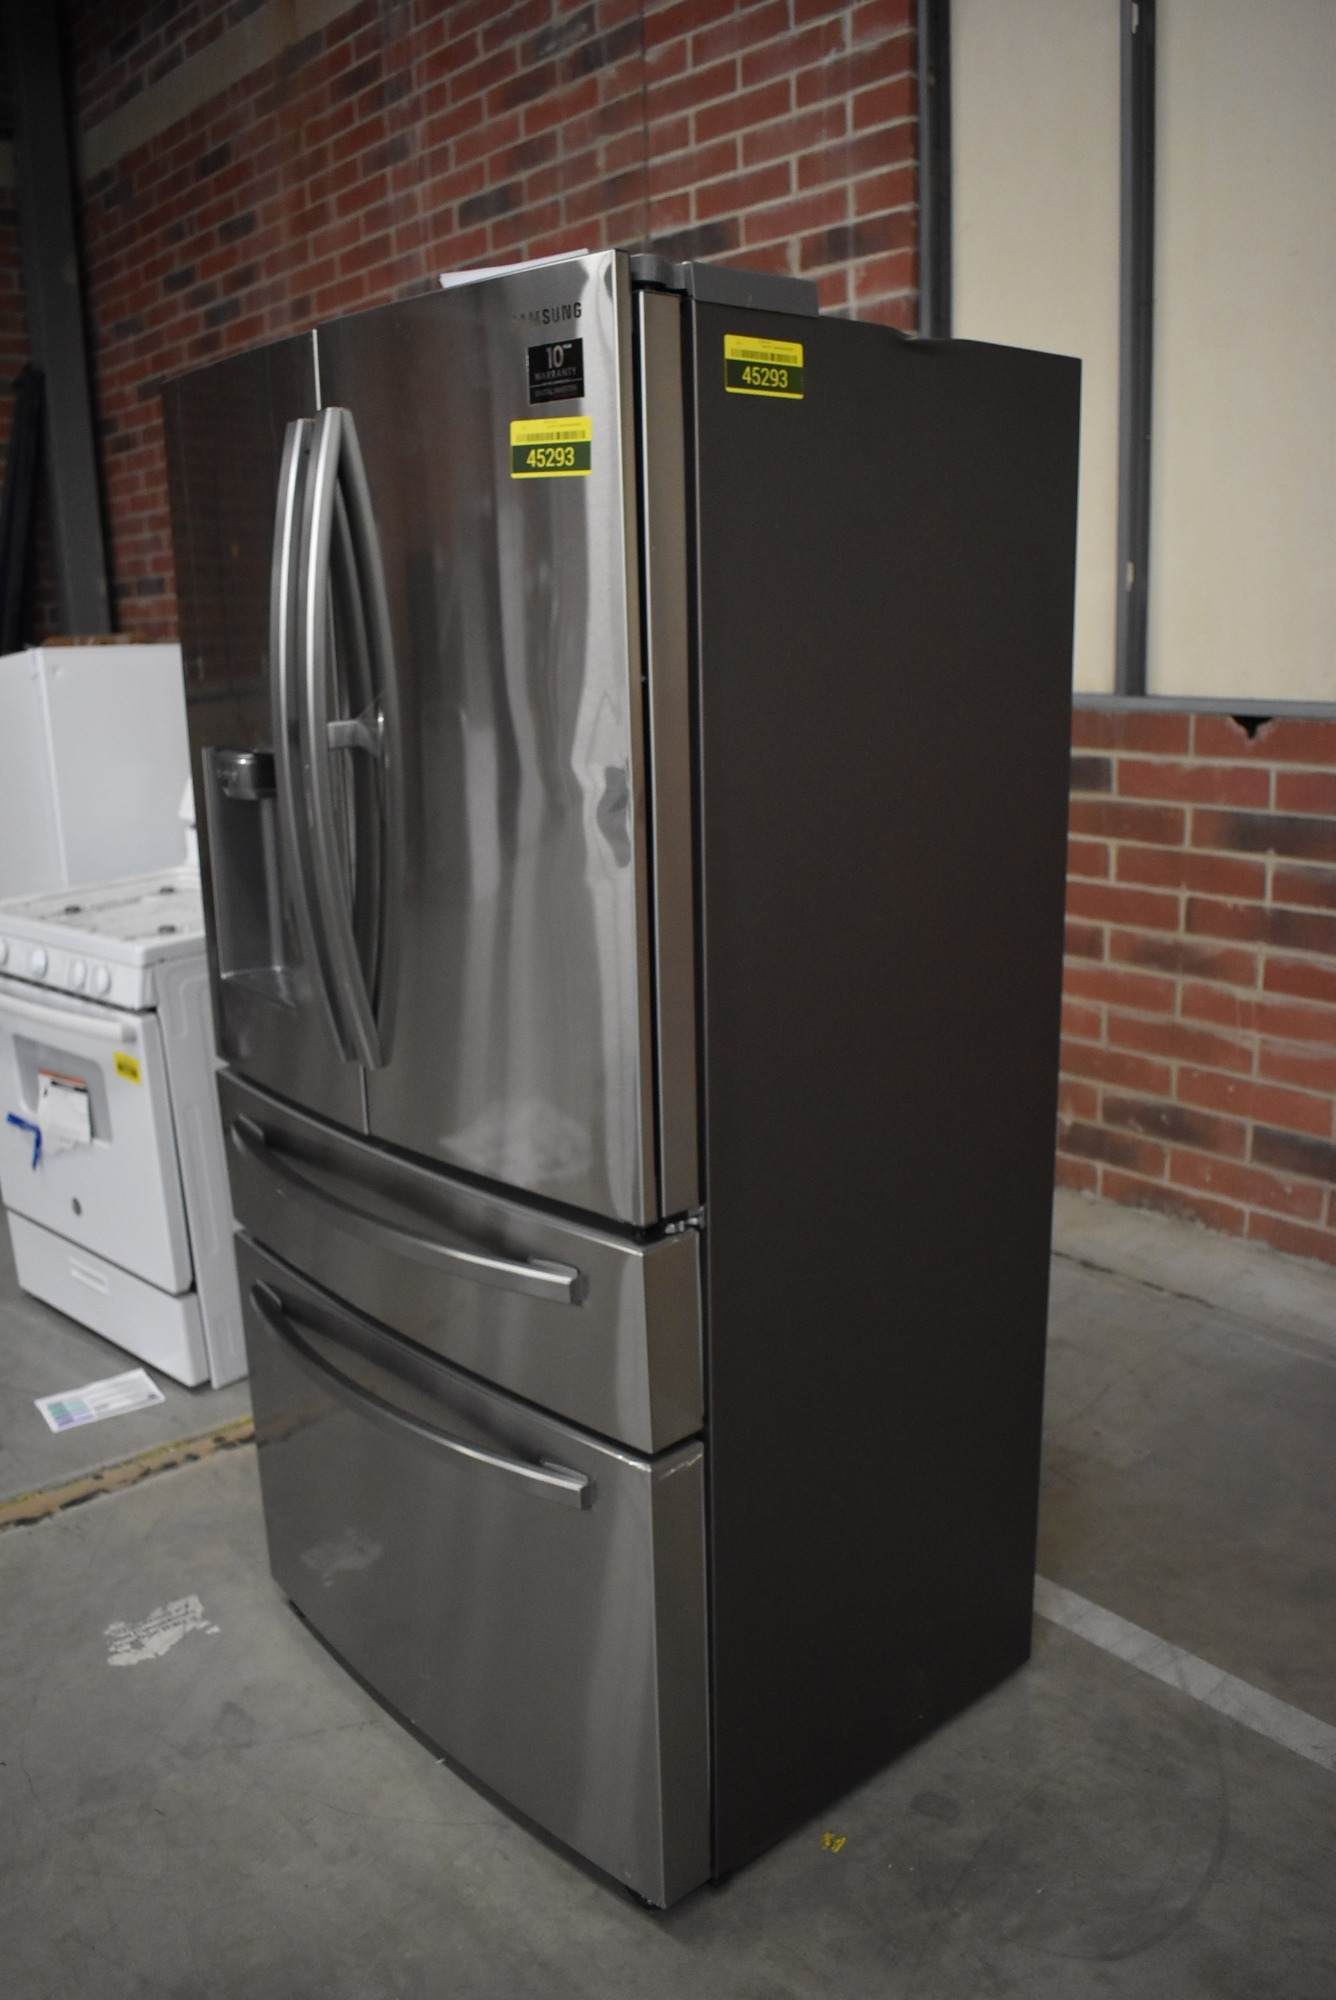 Samsung Rf22r7351sr 36 Quot Stainless French Door Refrigerator